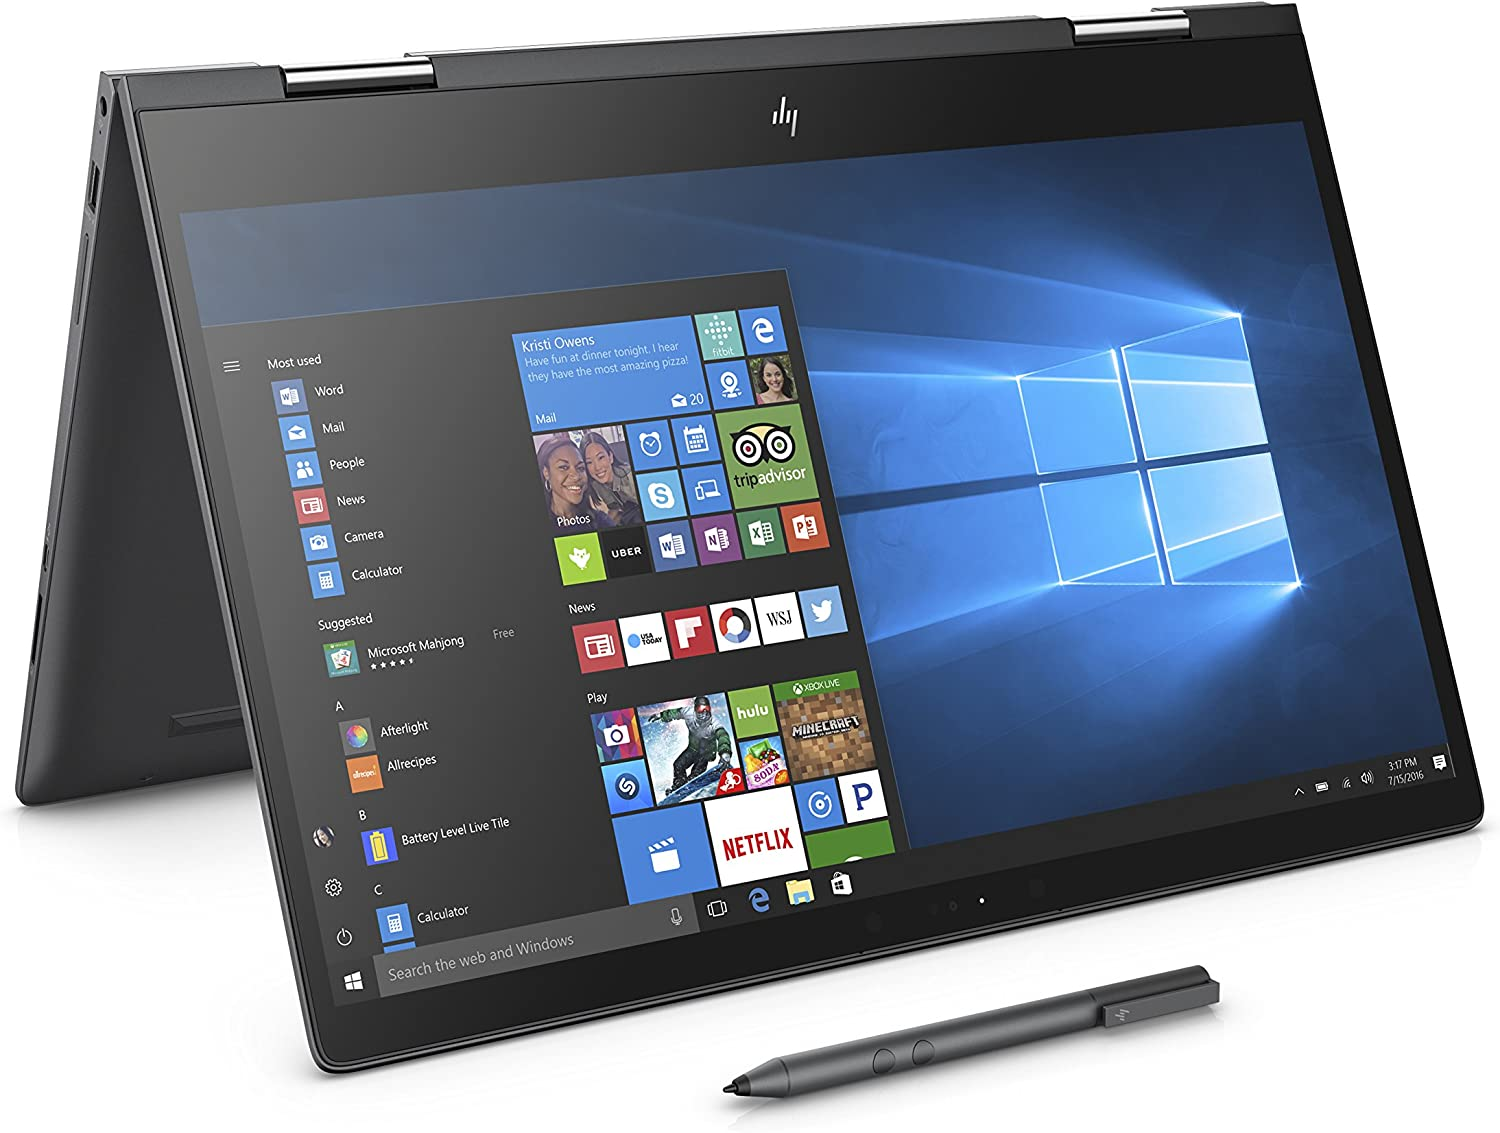 Offerta Hp Envy x360 su TrovaUsati.it